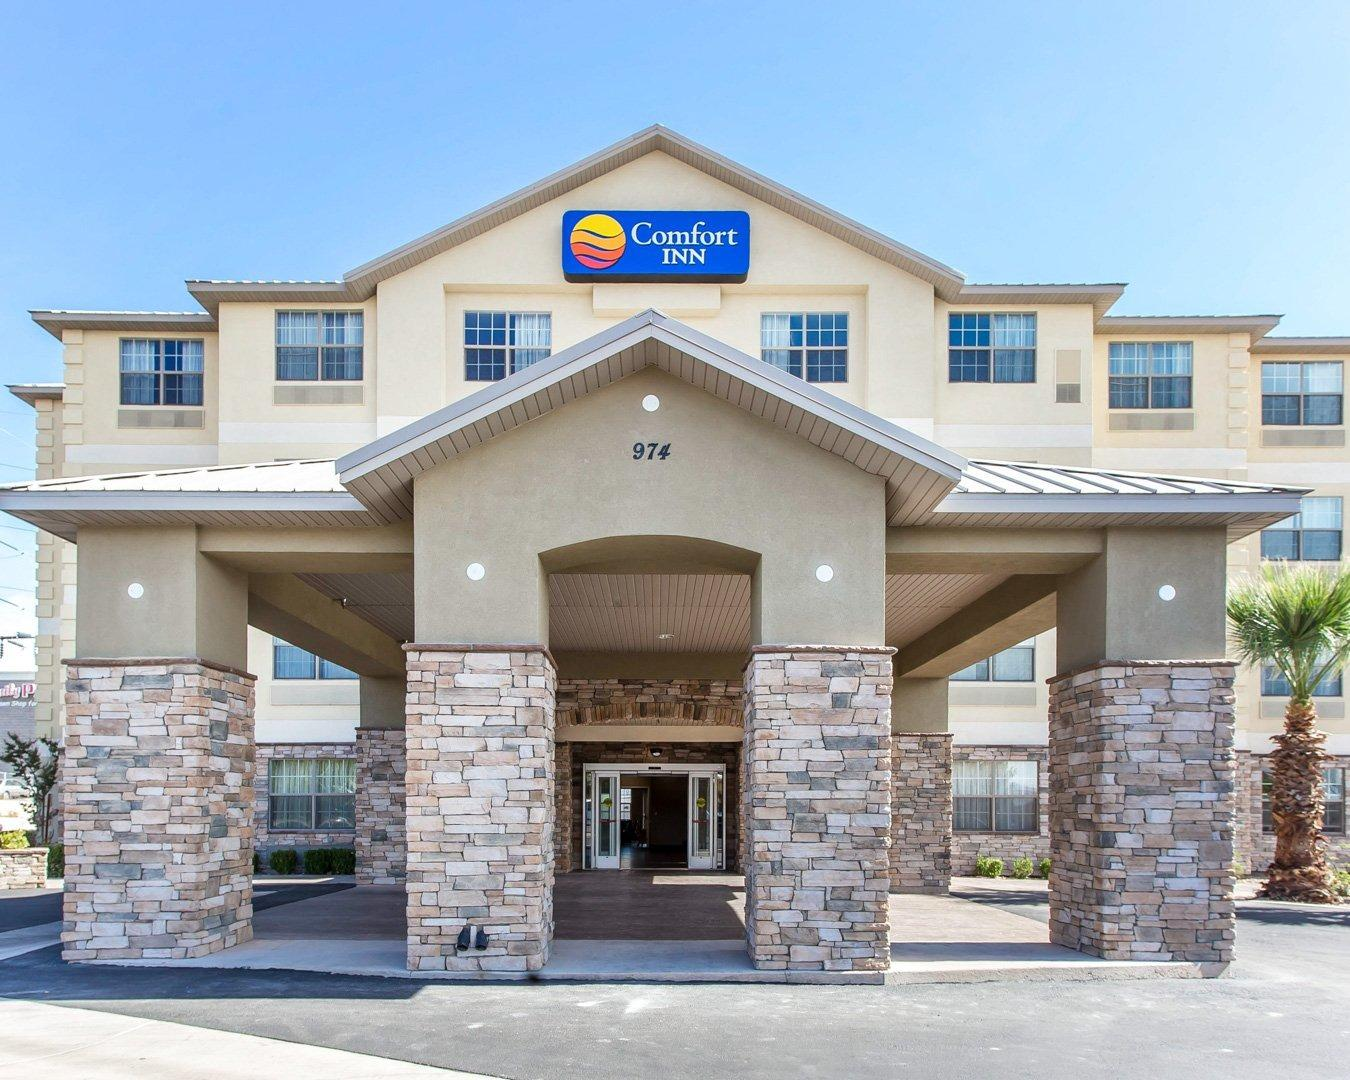 comfort inn saint george north reviews 974 north 2720 east saint george ut n49. Black Bedroom Furniture Sets. Home Design Ideas